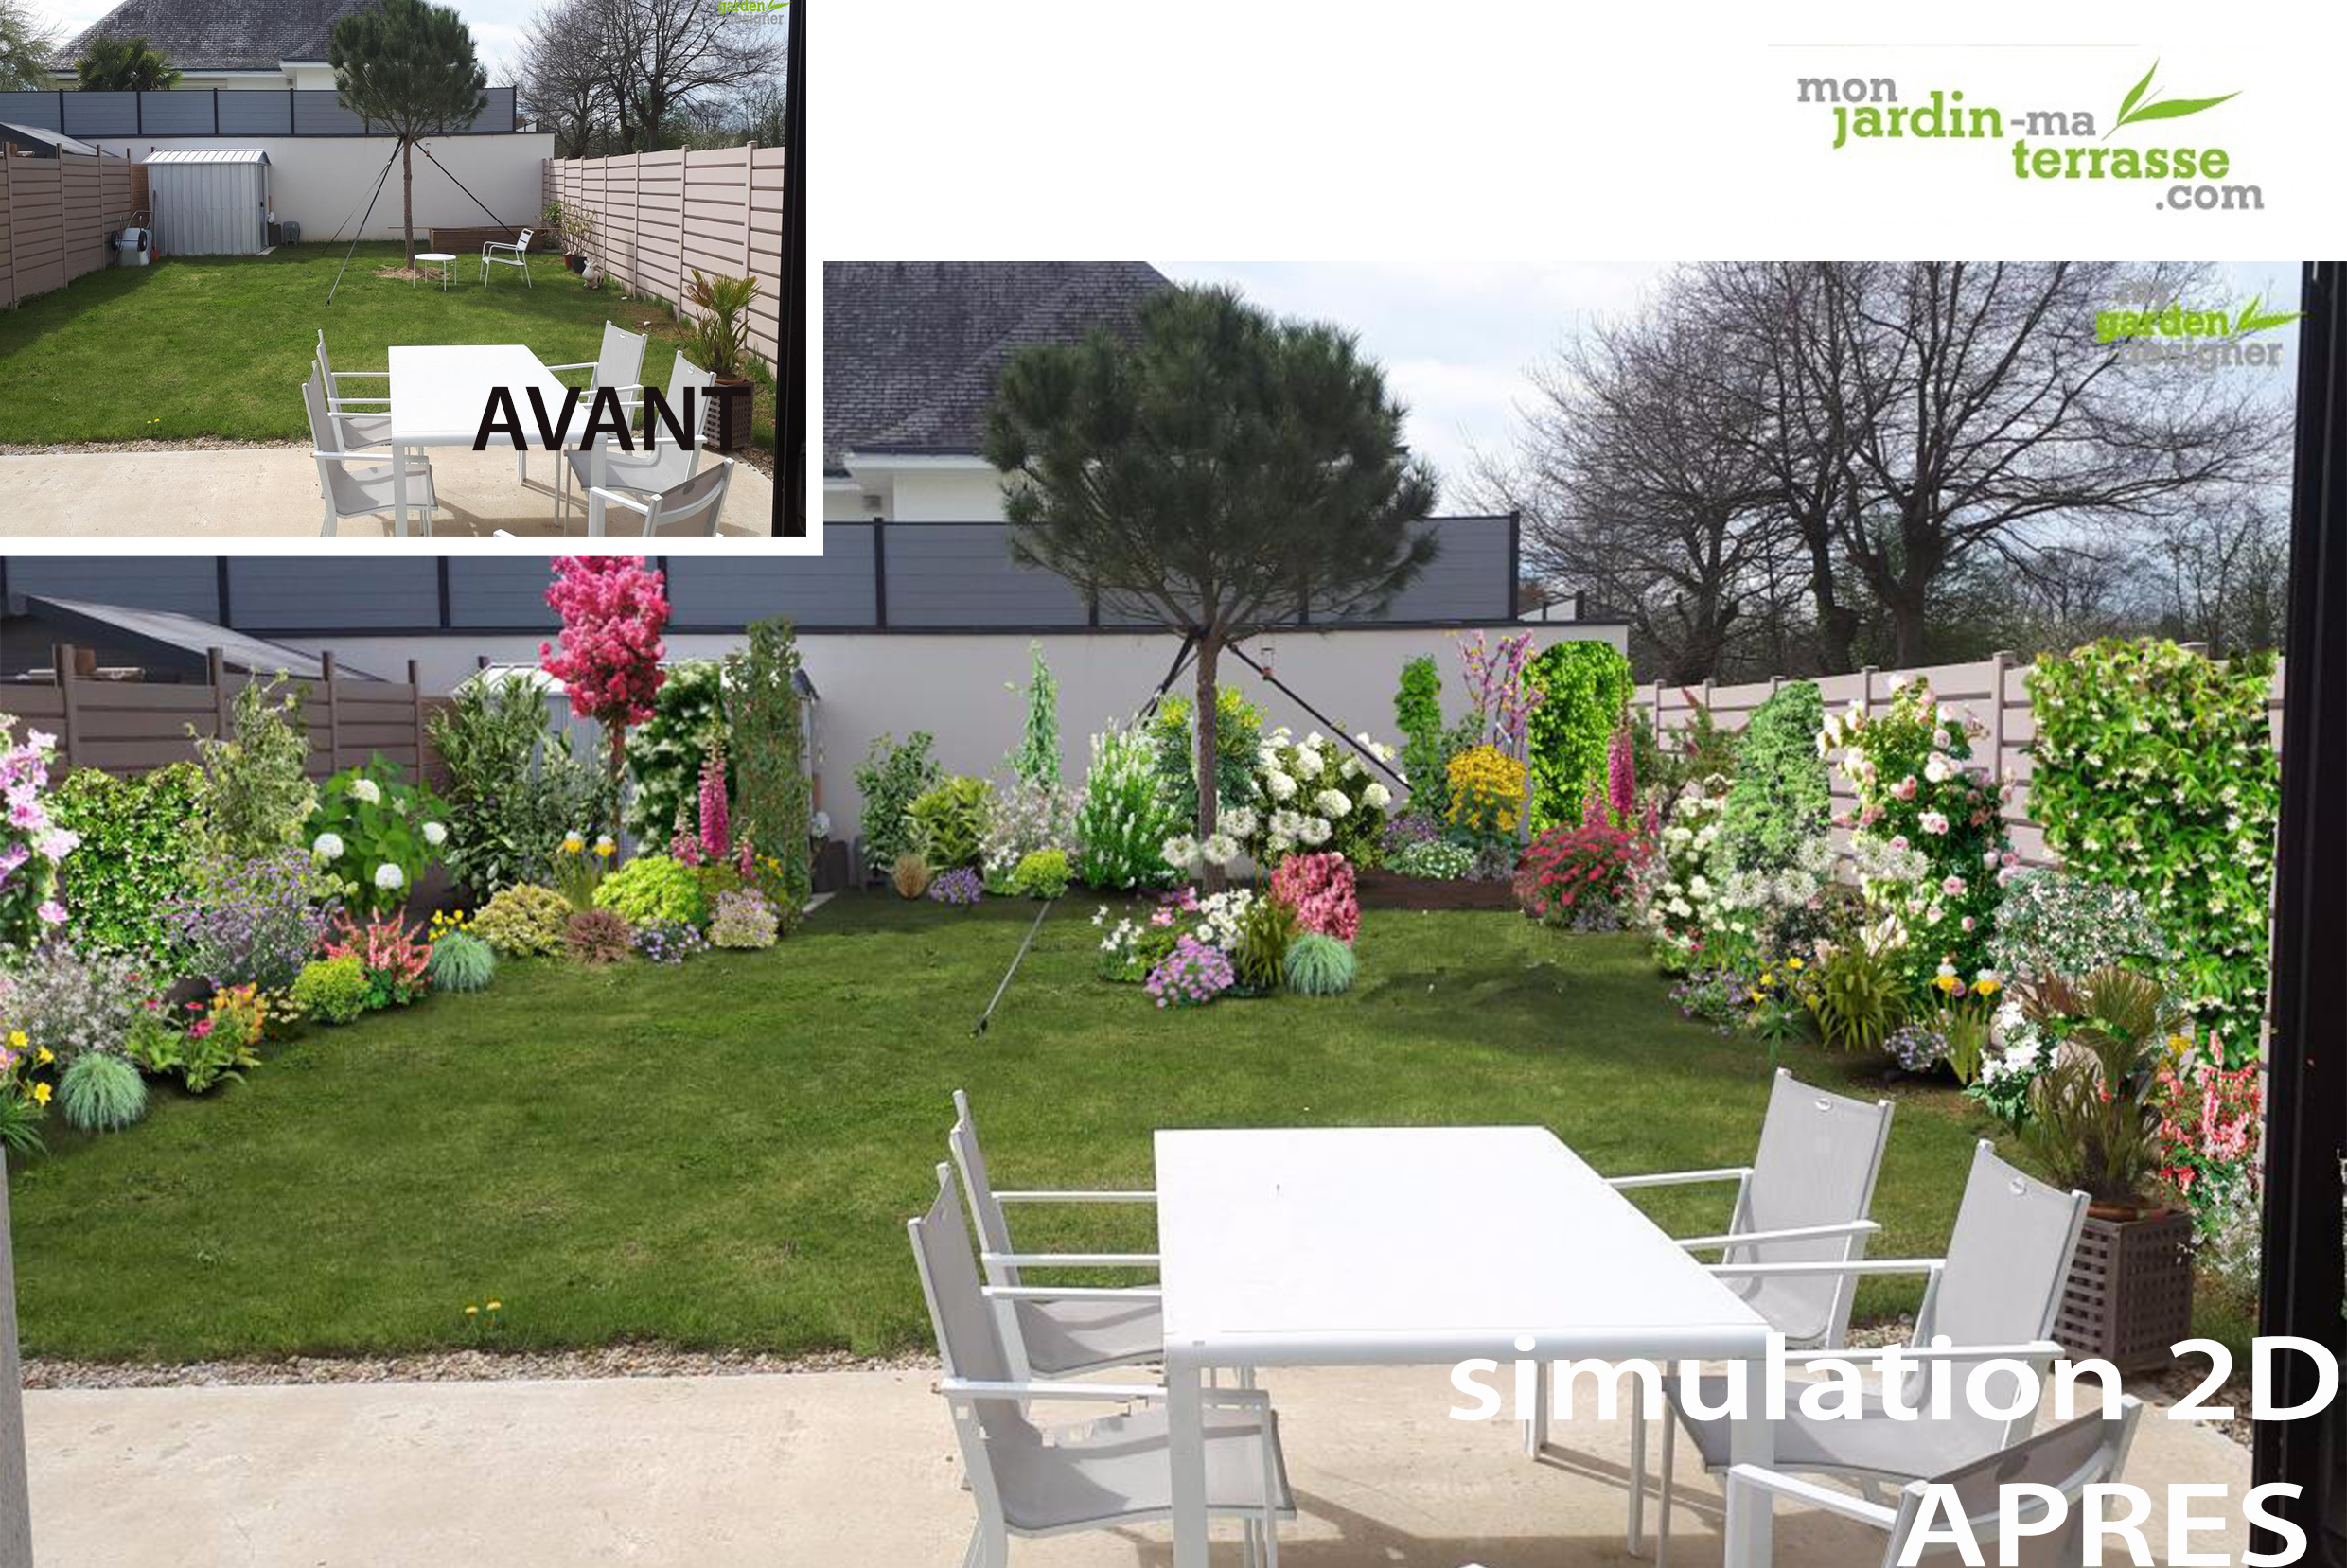 Comment am nager un petit jardin rectangulaire monjardin for Amenagement de jardin